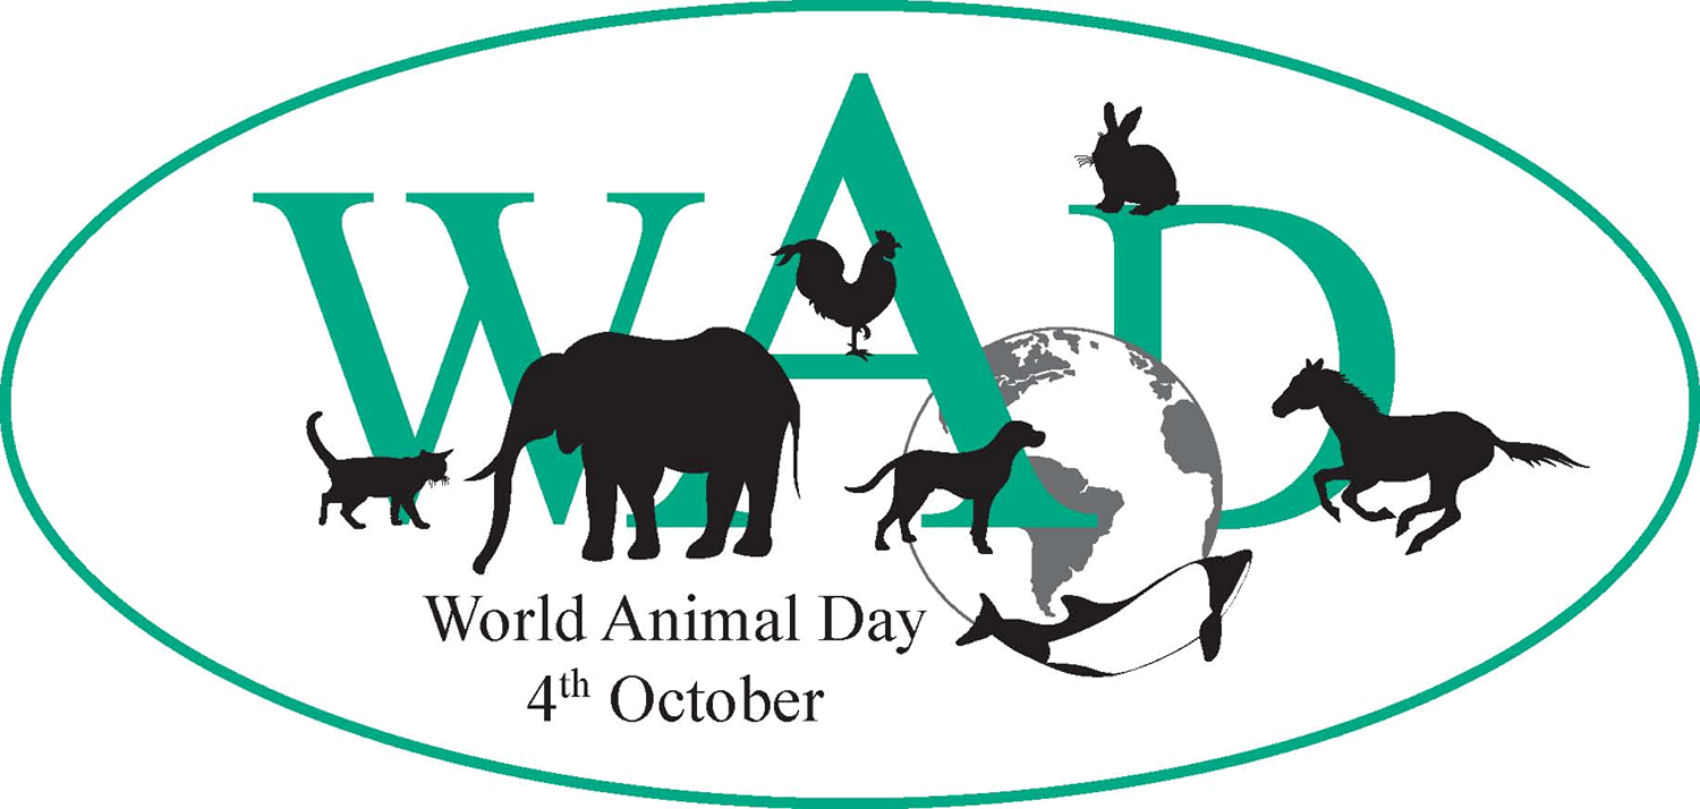 http://www.worldanimalday.org.uk/wp-content/uploads/2012/10/World-Animal-Day-logo-final-1700-pixels-wide.jpg